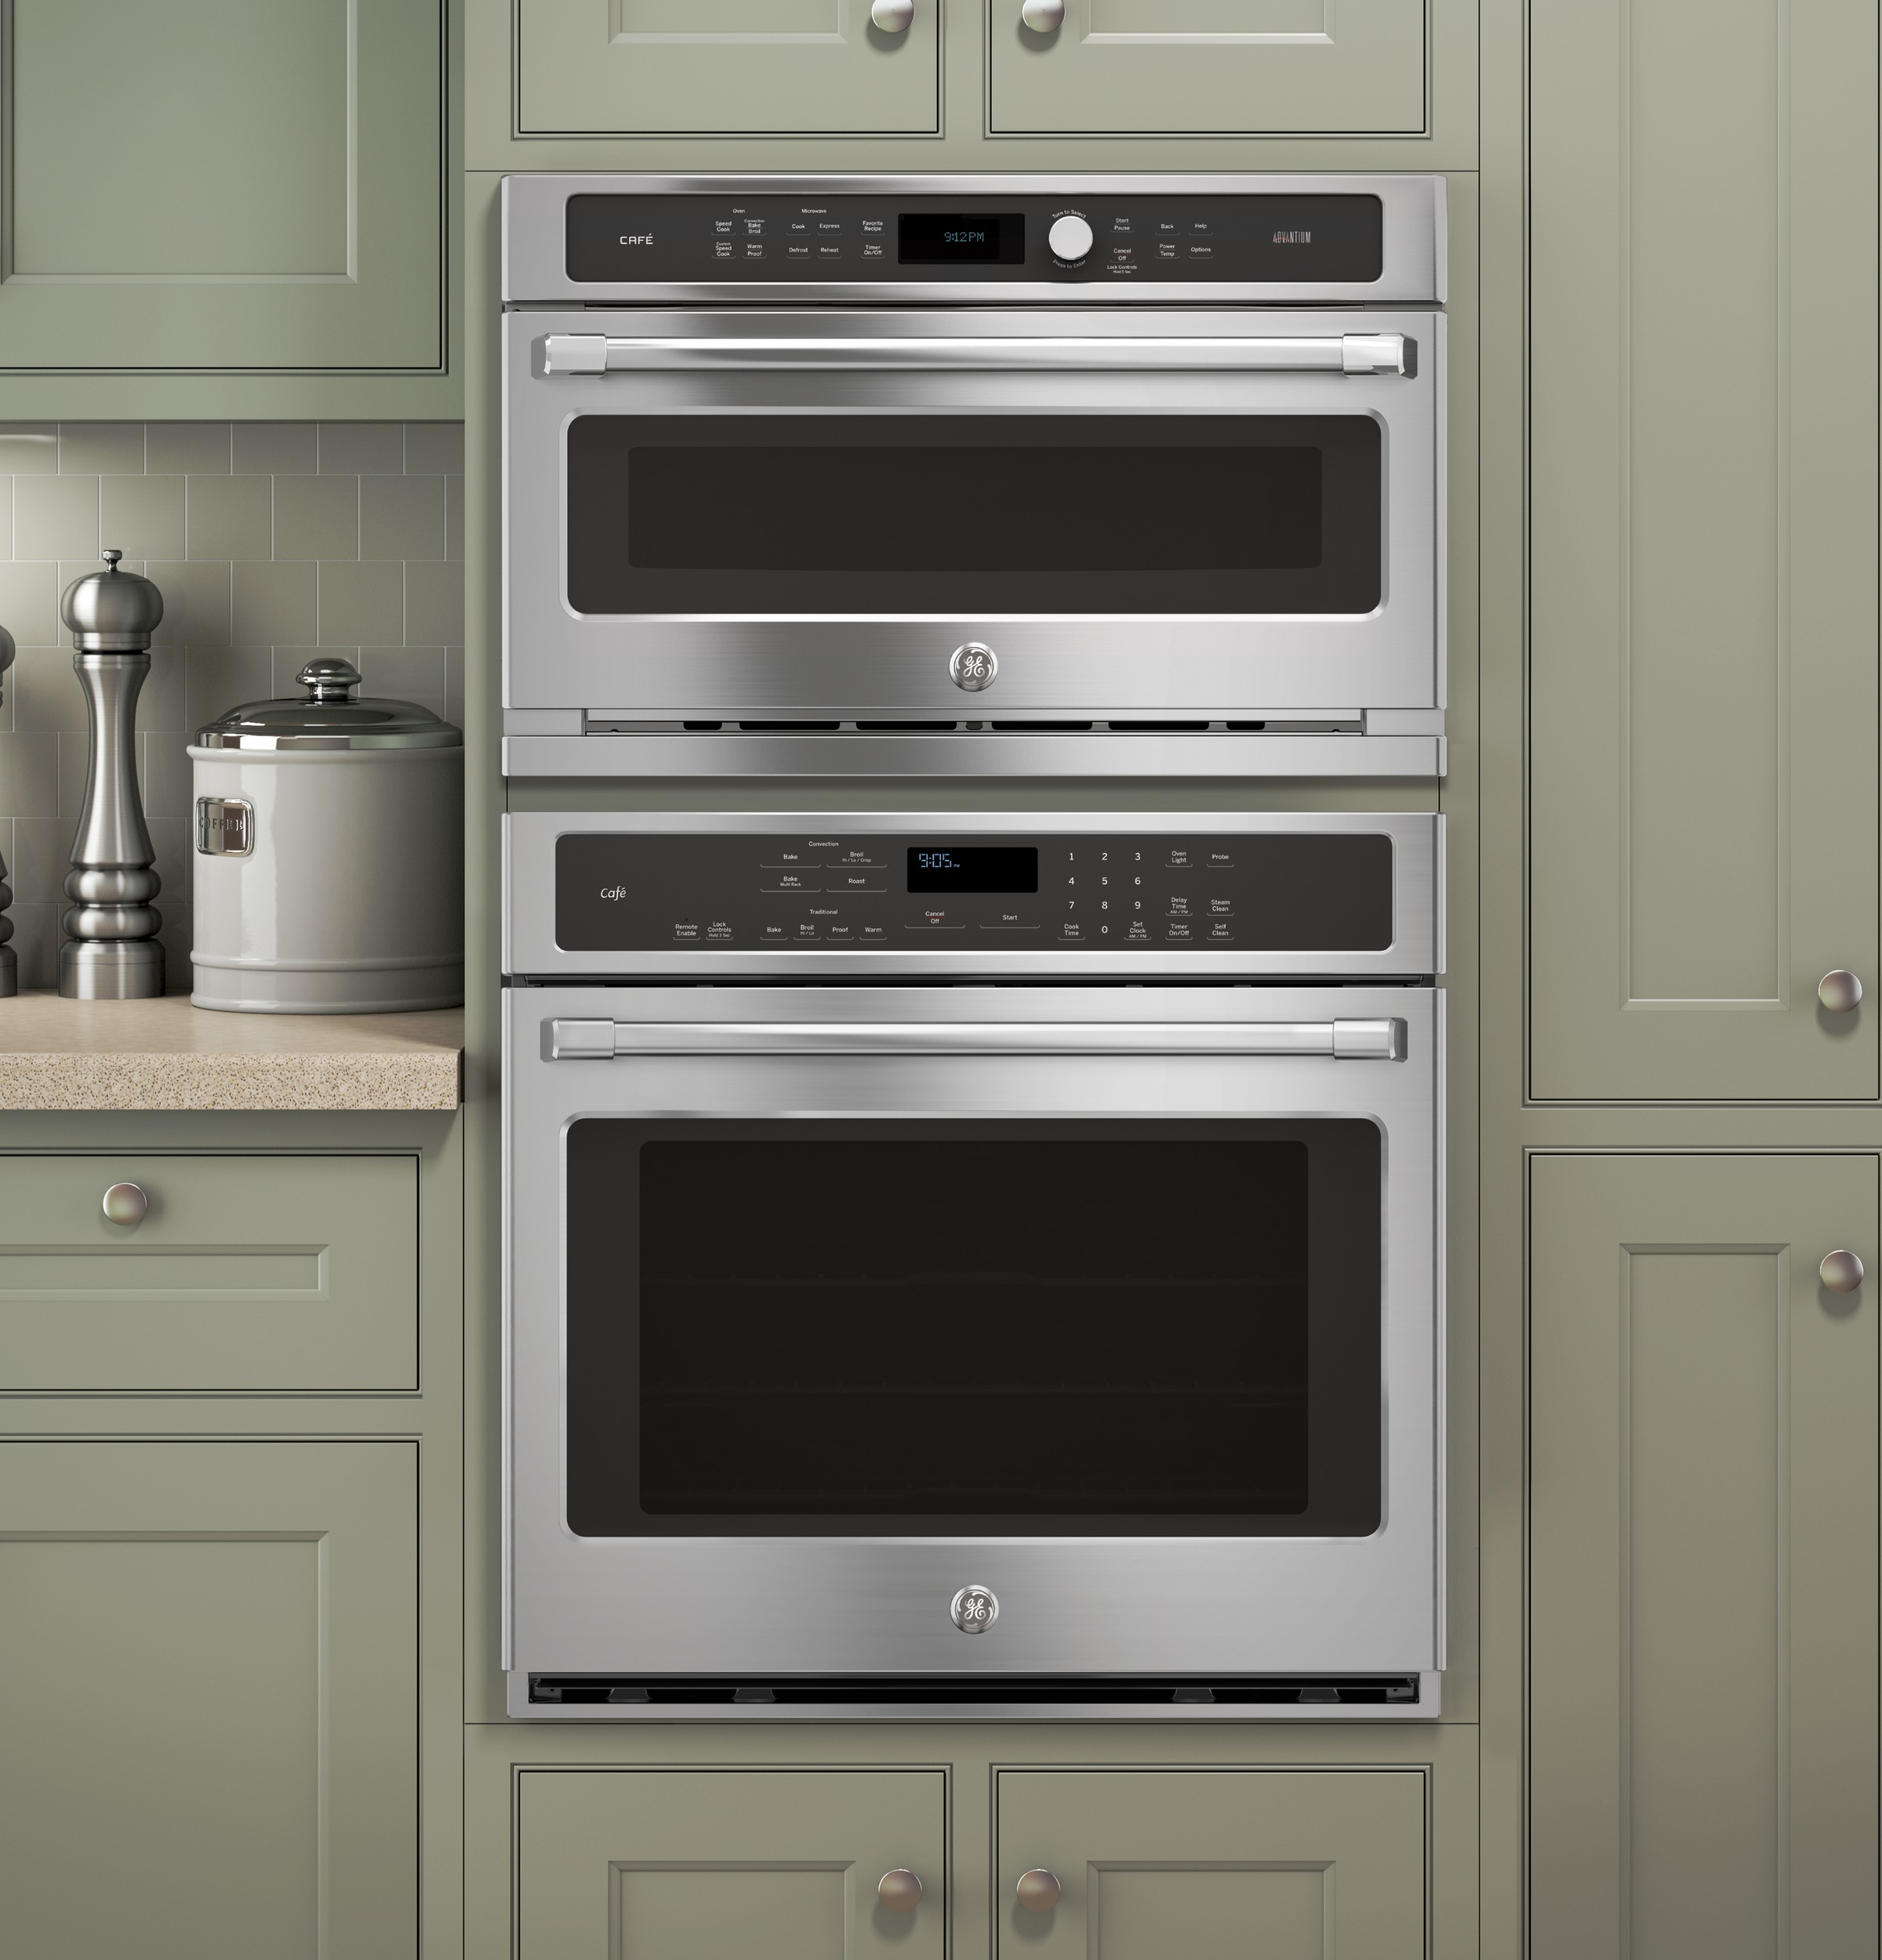 Ge Cafe Wall Ovens Cooking Appliances Arizona Wholesale Supply